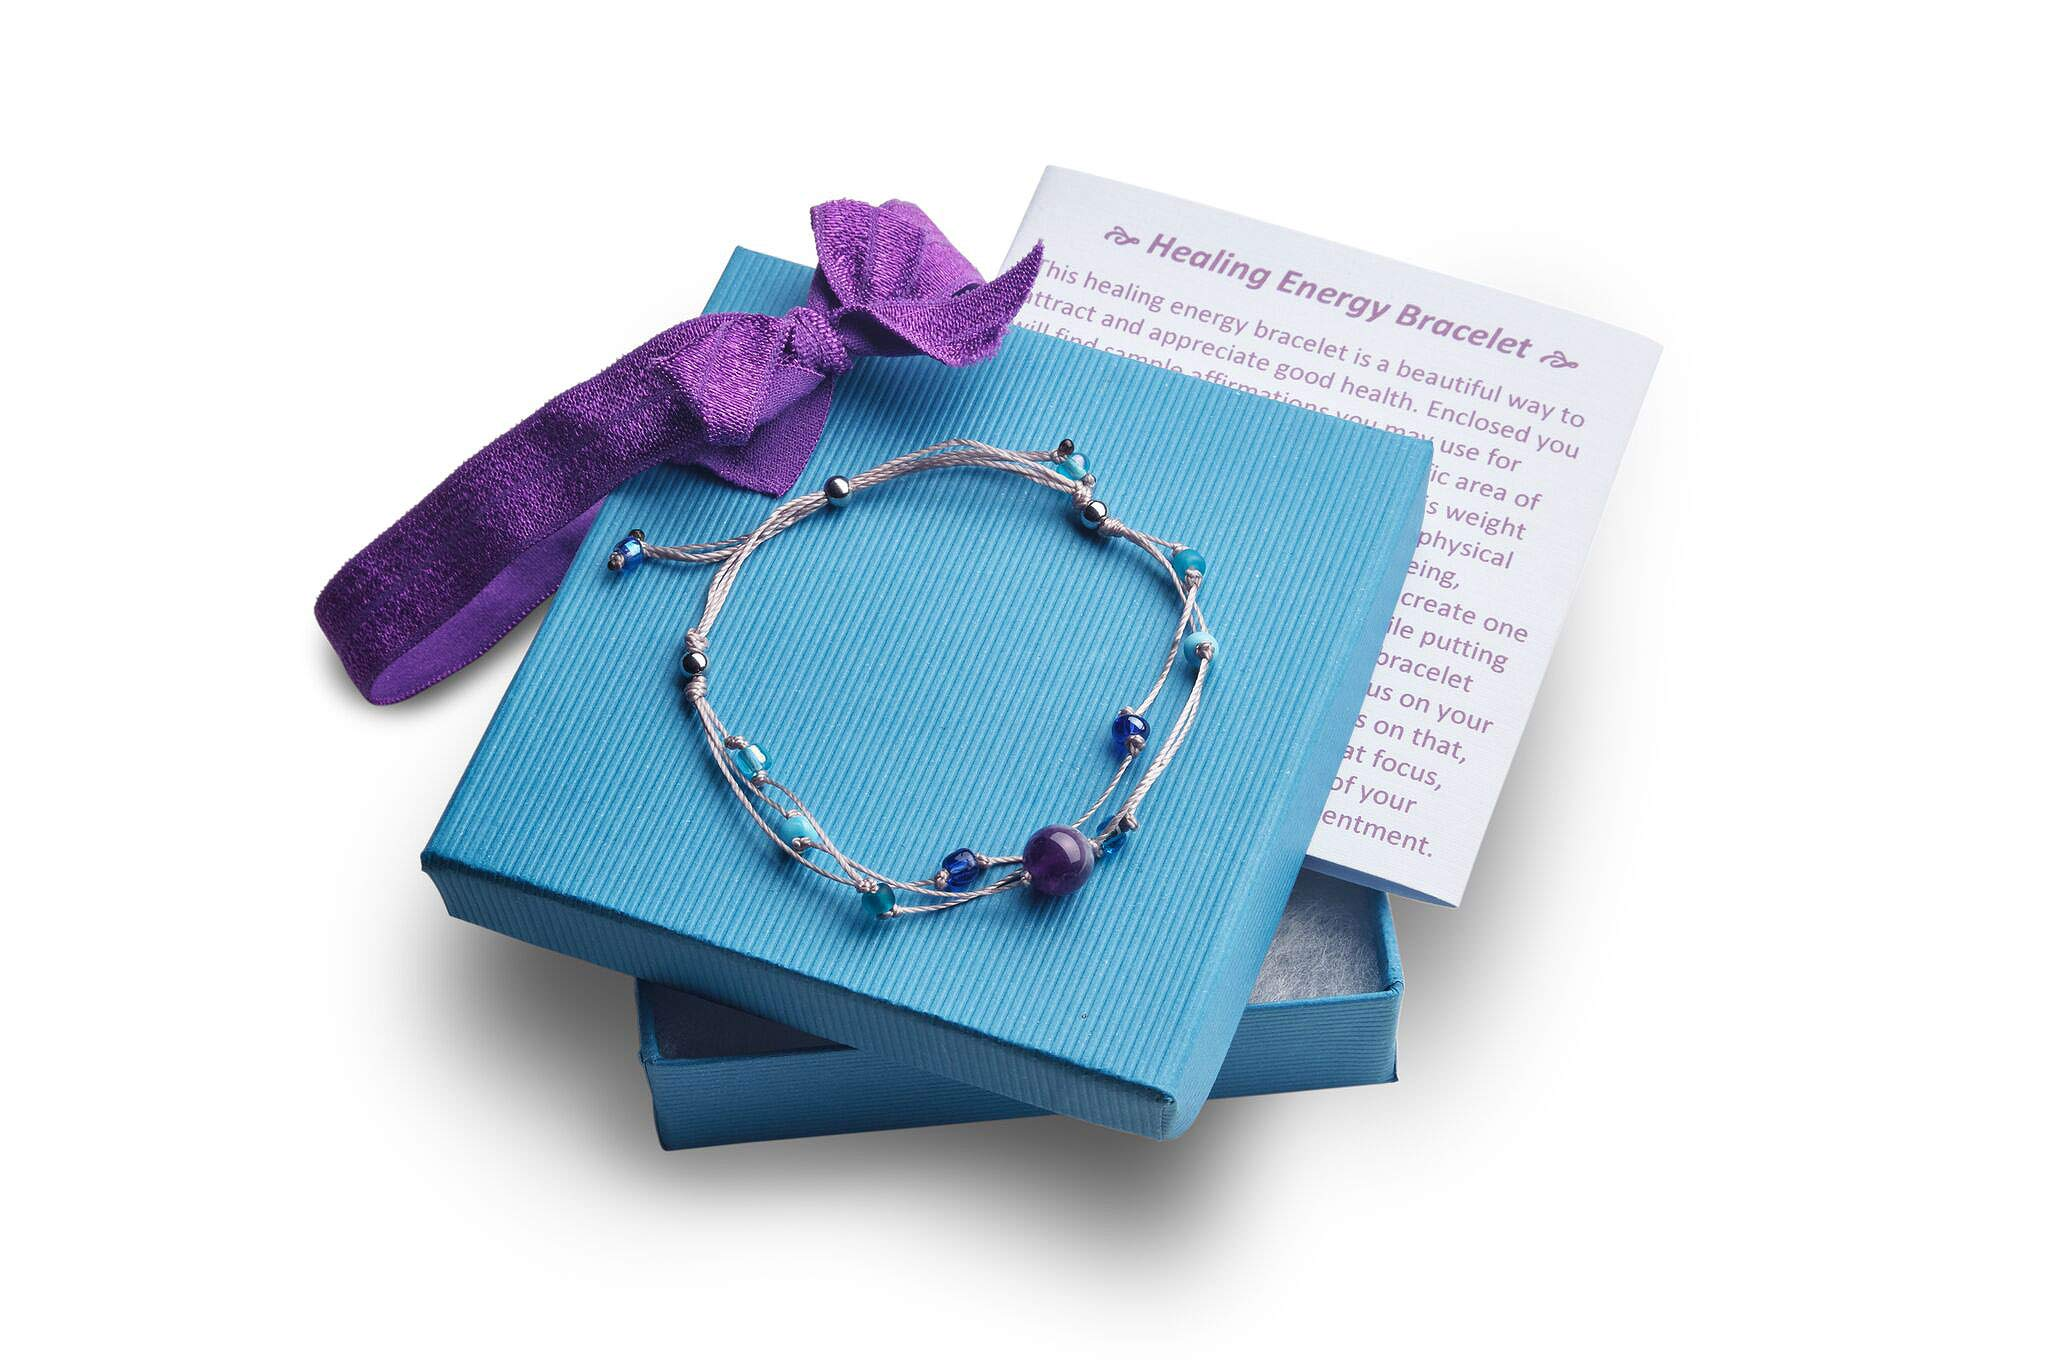 Healing Energy Bracelet | with a Heart Warming Inspirational Card Presented in a Gorgeous Gift Box | The Perfect Caring Gift Handmade by BlankieGram (Grey) by BLANKIEGRAM.COM